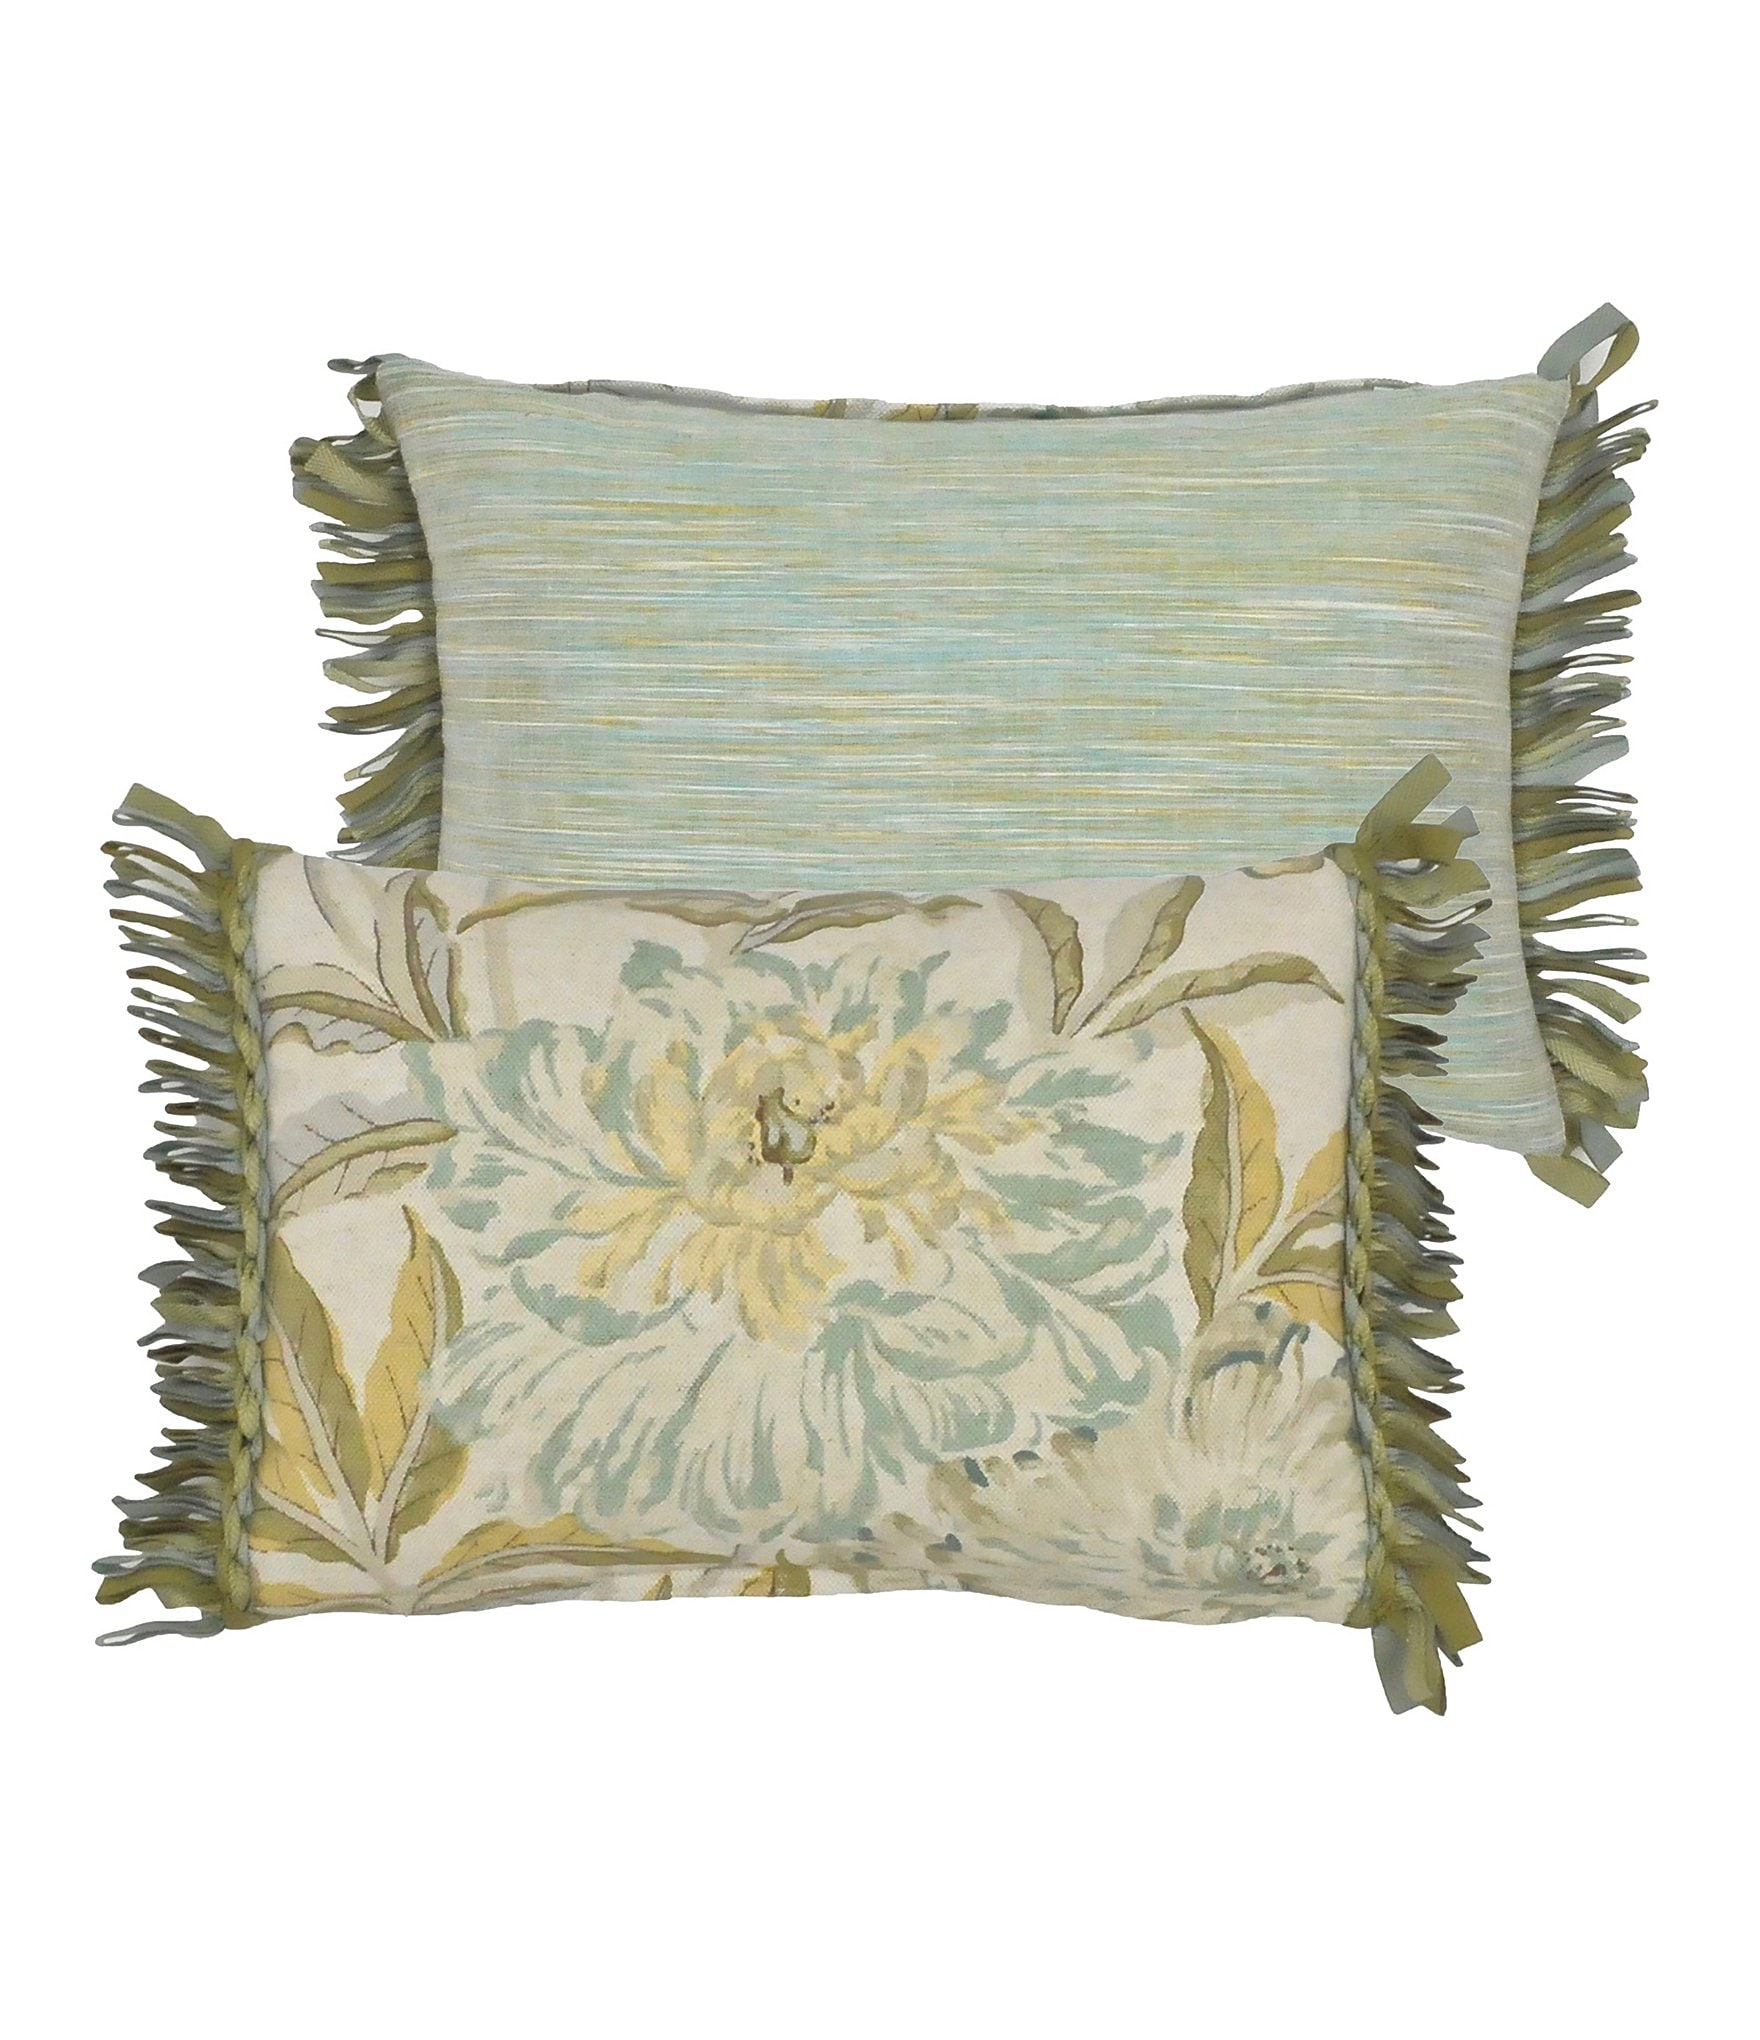 Rose Tree Antibes Fringed Floral Breakfast Pillow Dillards